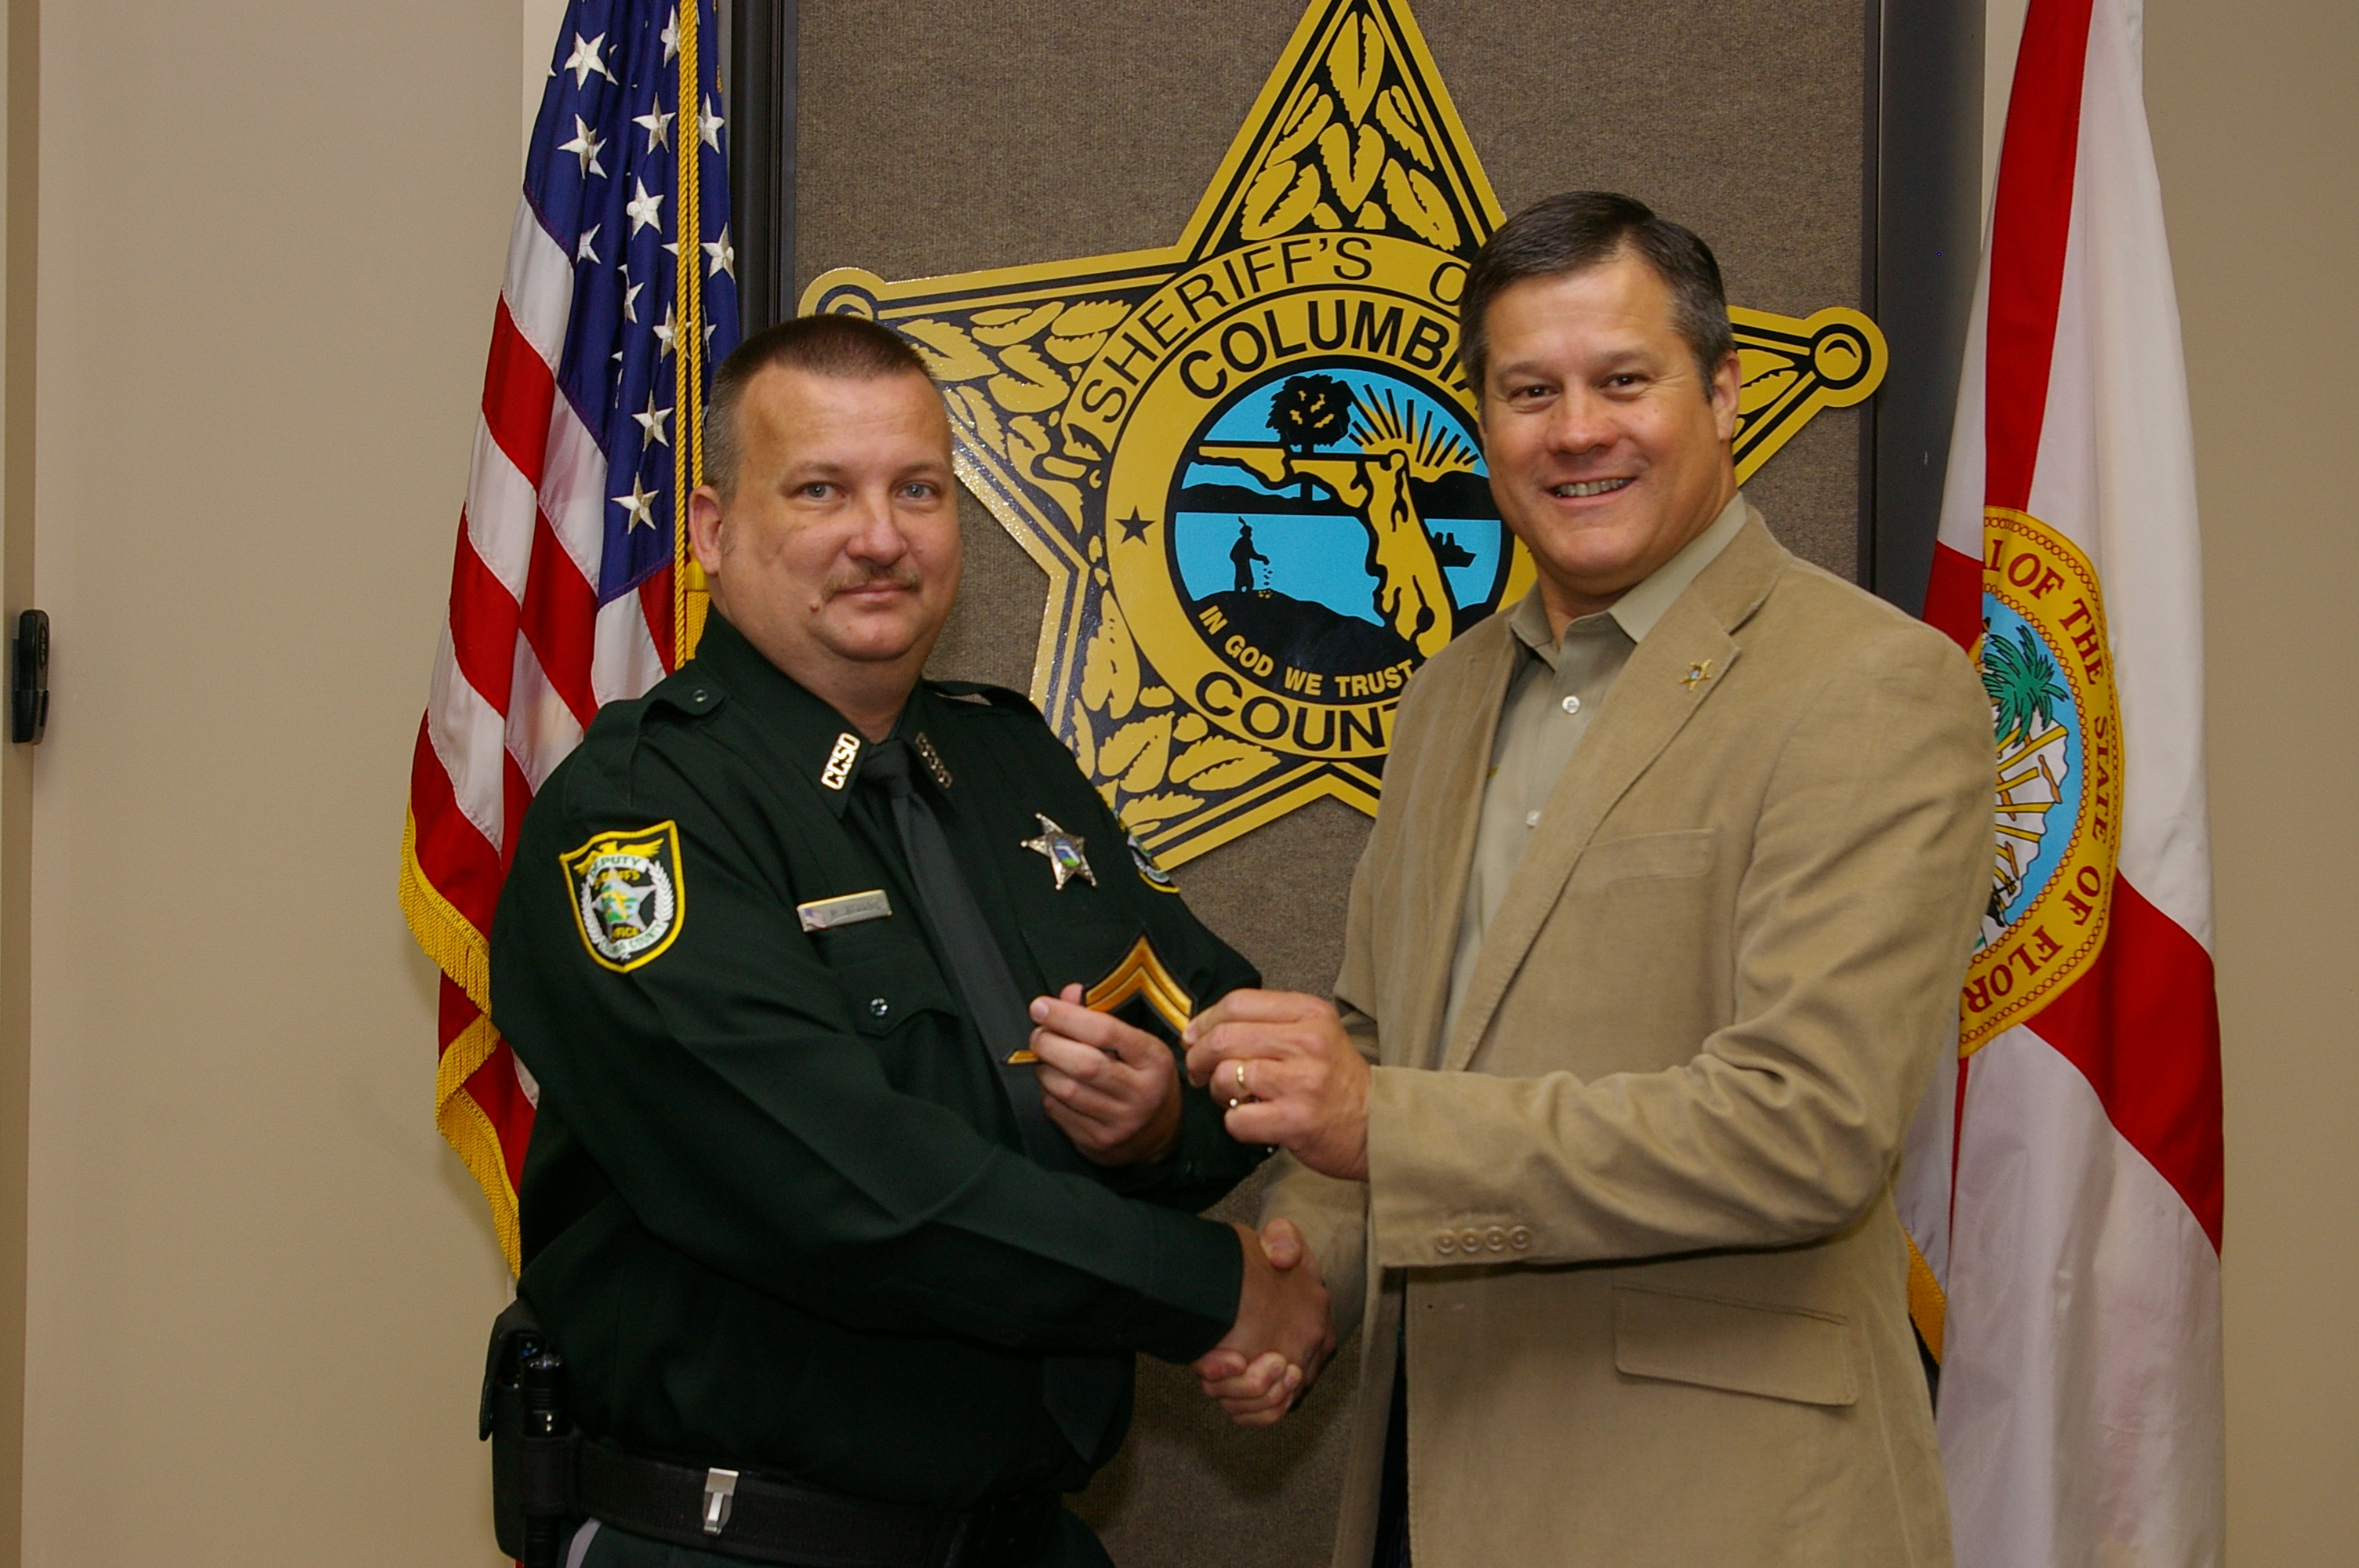 Corporal Michael Stancil and Sheriff Mark Hunter